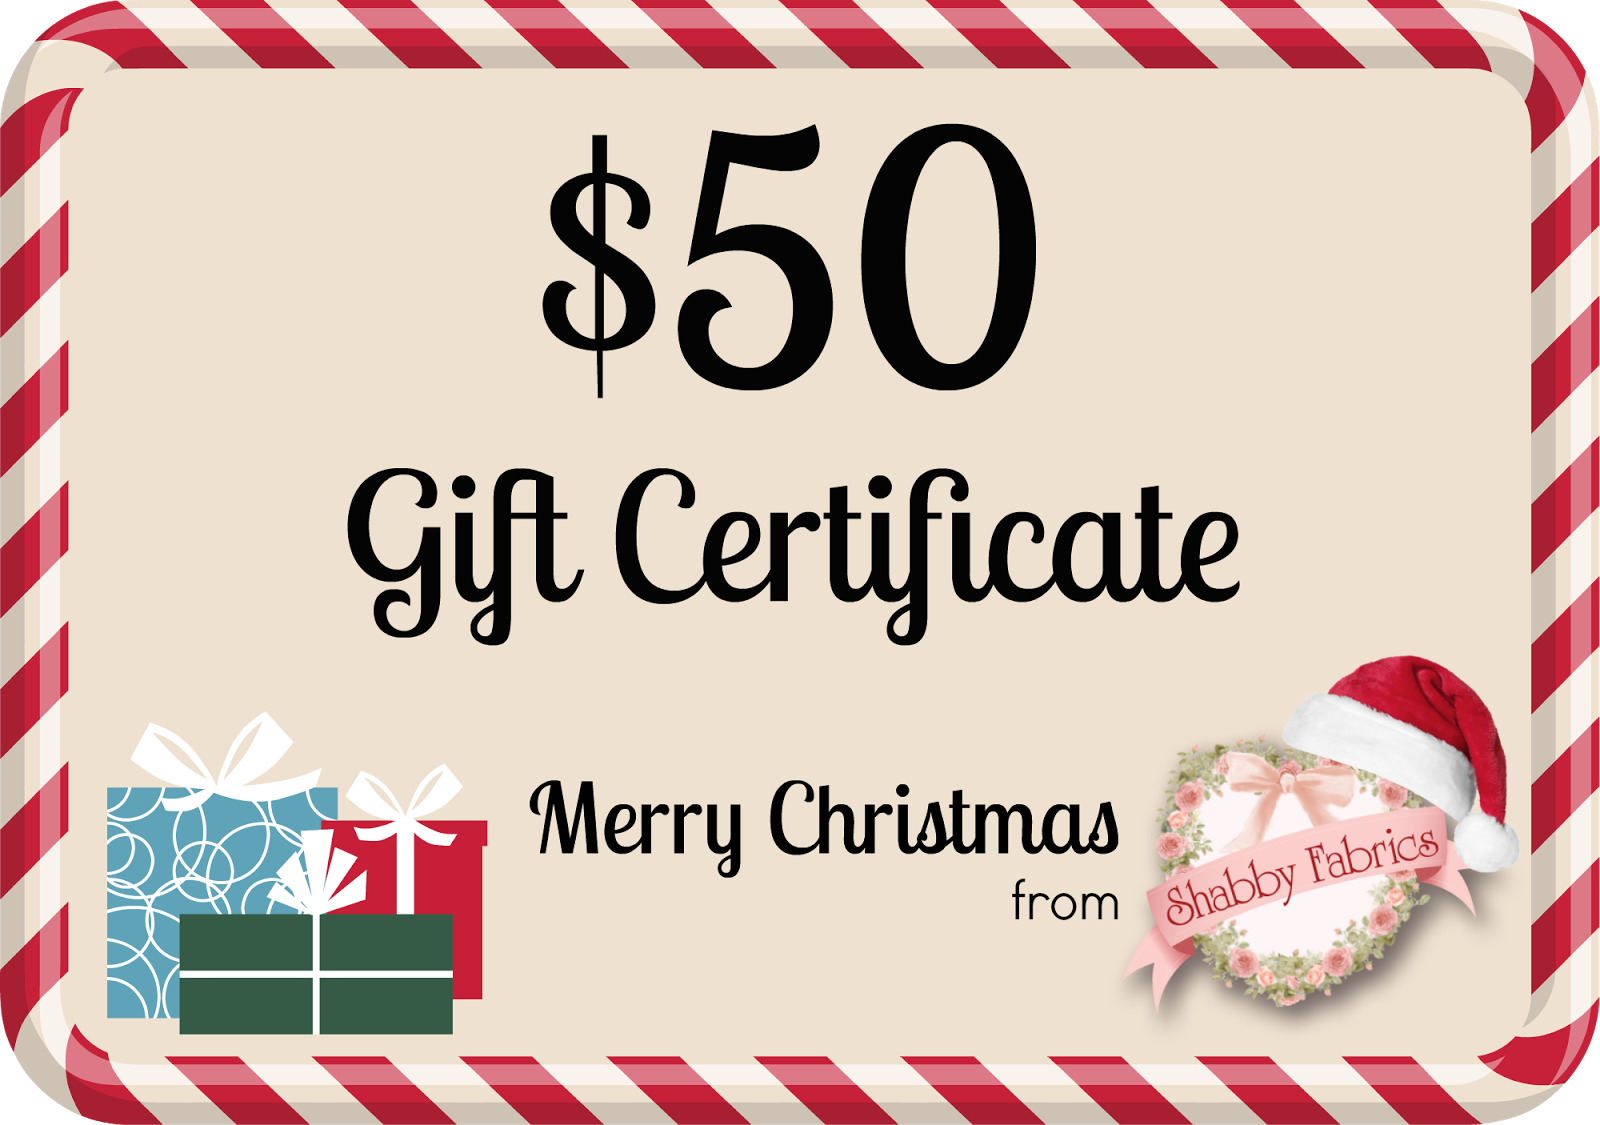 10 Off Coupon Template A coupon good for $10 off